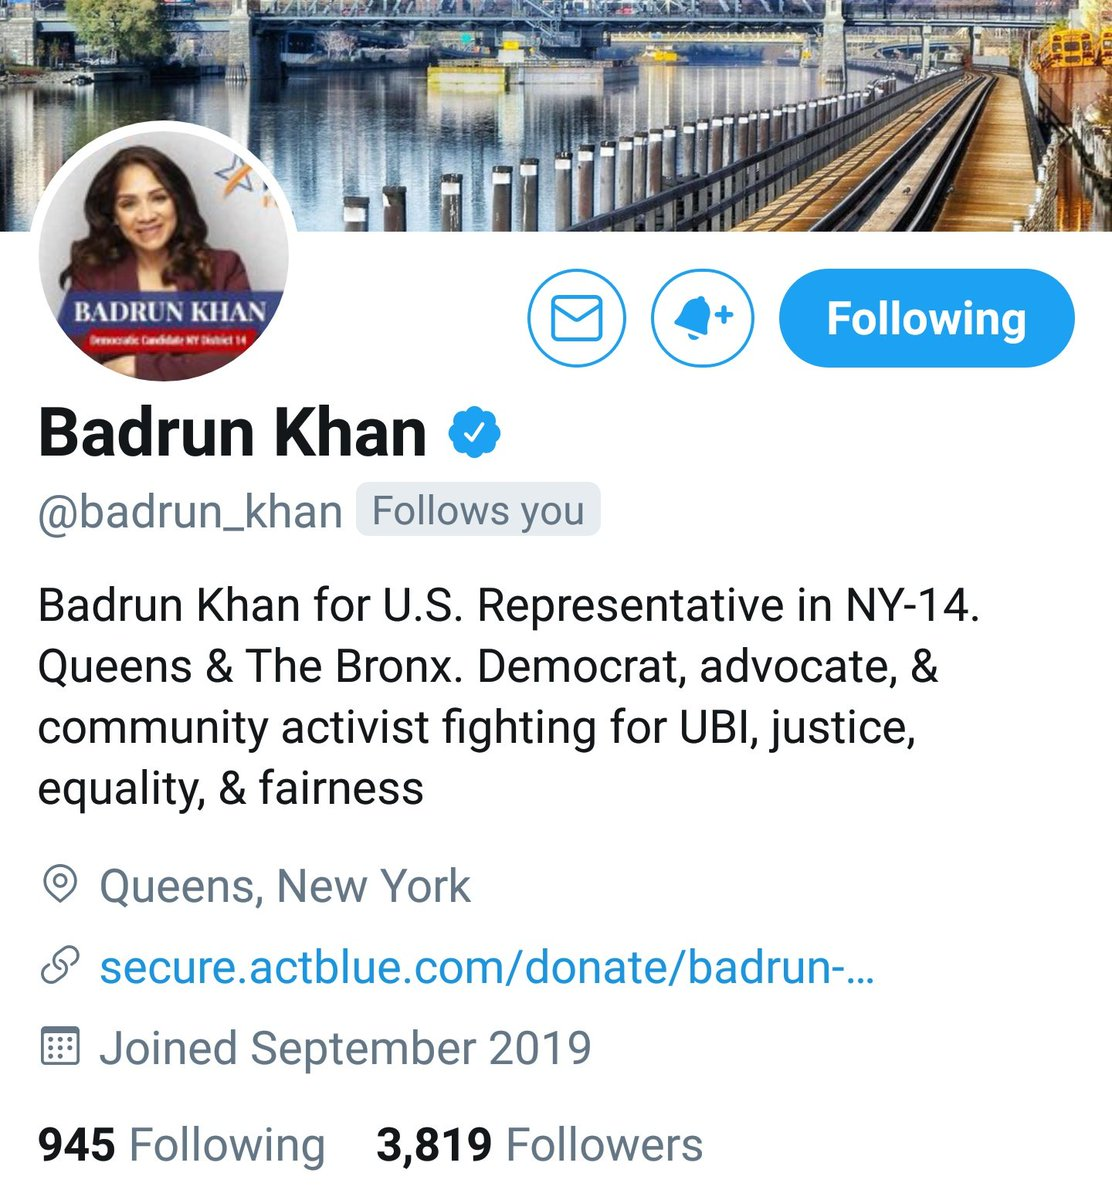 #YangGang here is another UBI YangGang candidate for Congress! Let's give @badrun_khan some support!  Donate here: